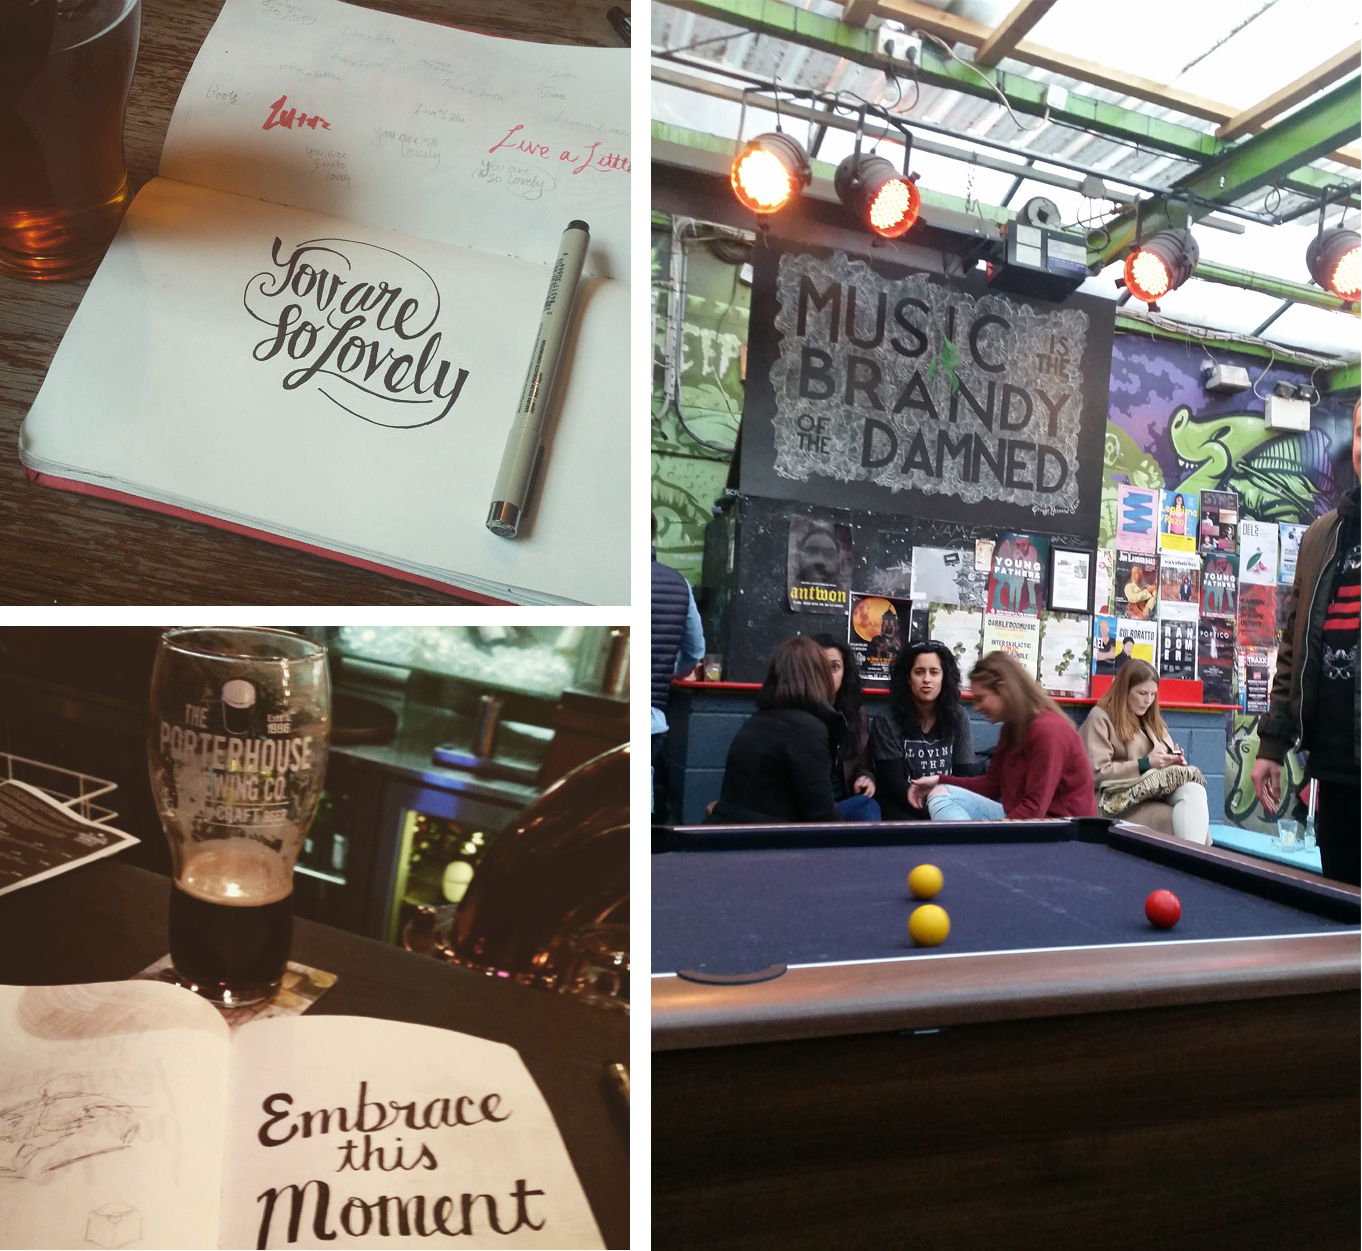 Drinking, doodling, and playing pool with tiny balls